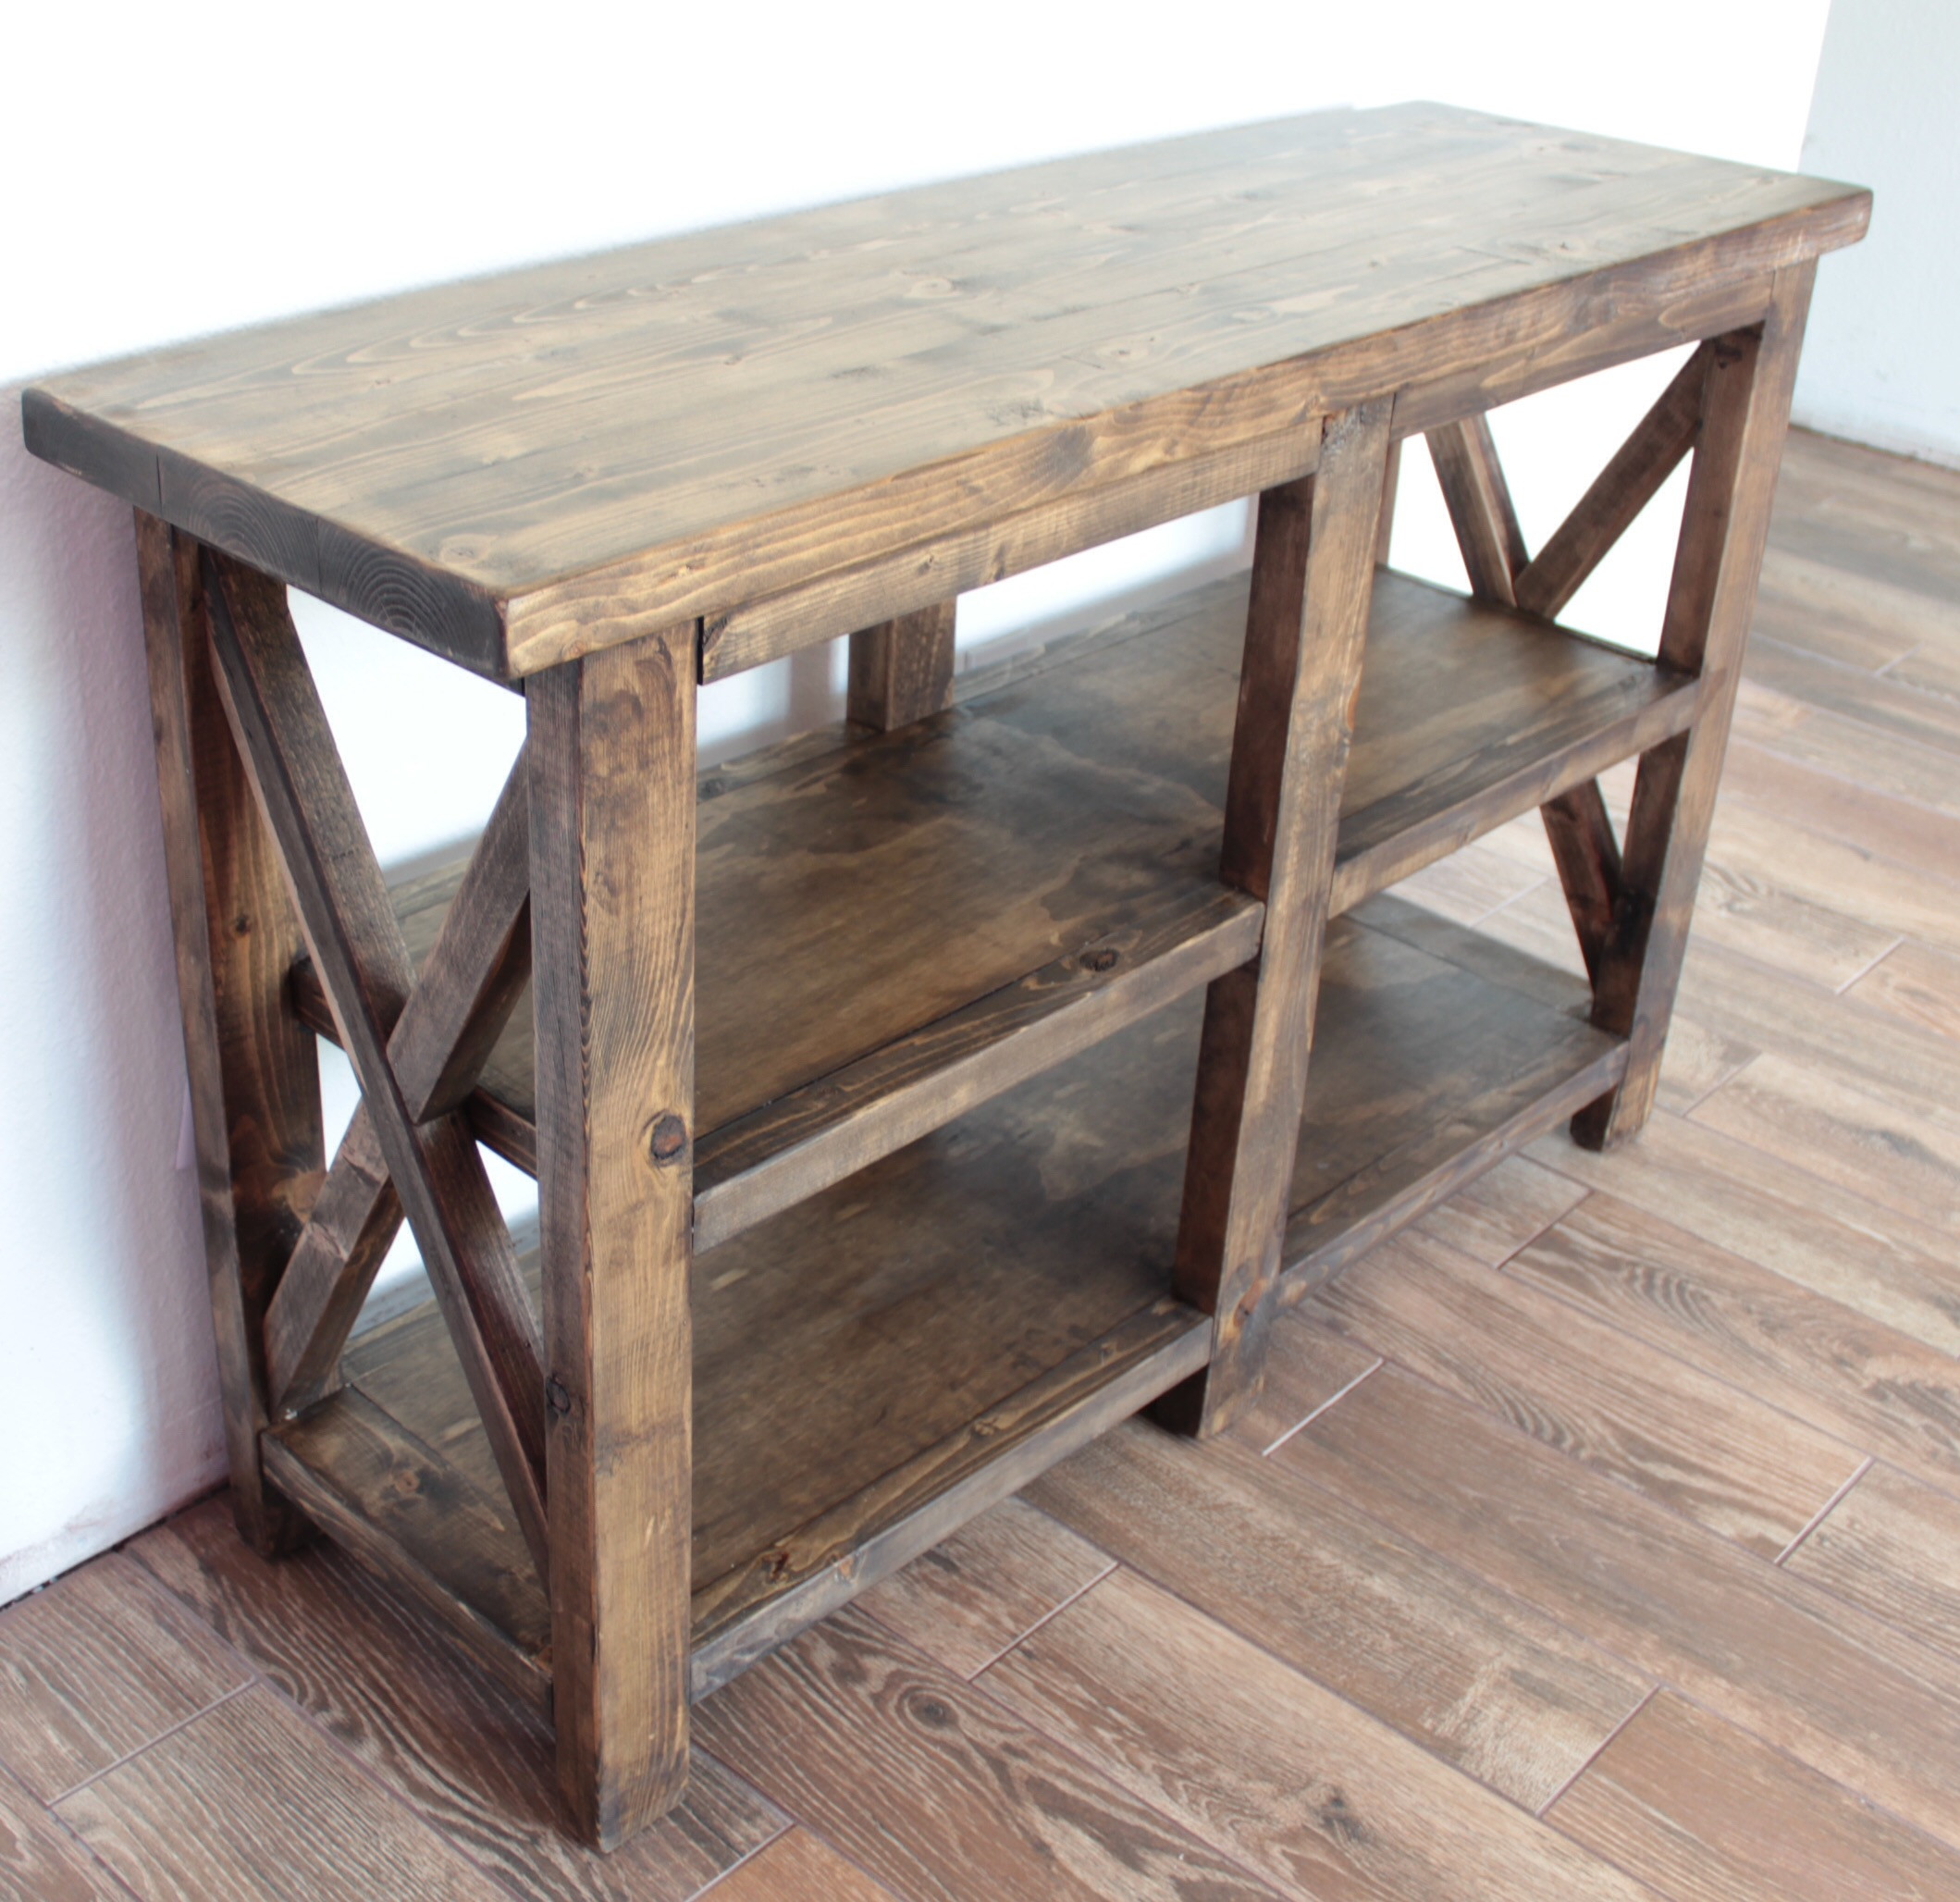 Best ideas about Rustic Entryway Table . Save or Pin Ana White Now.